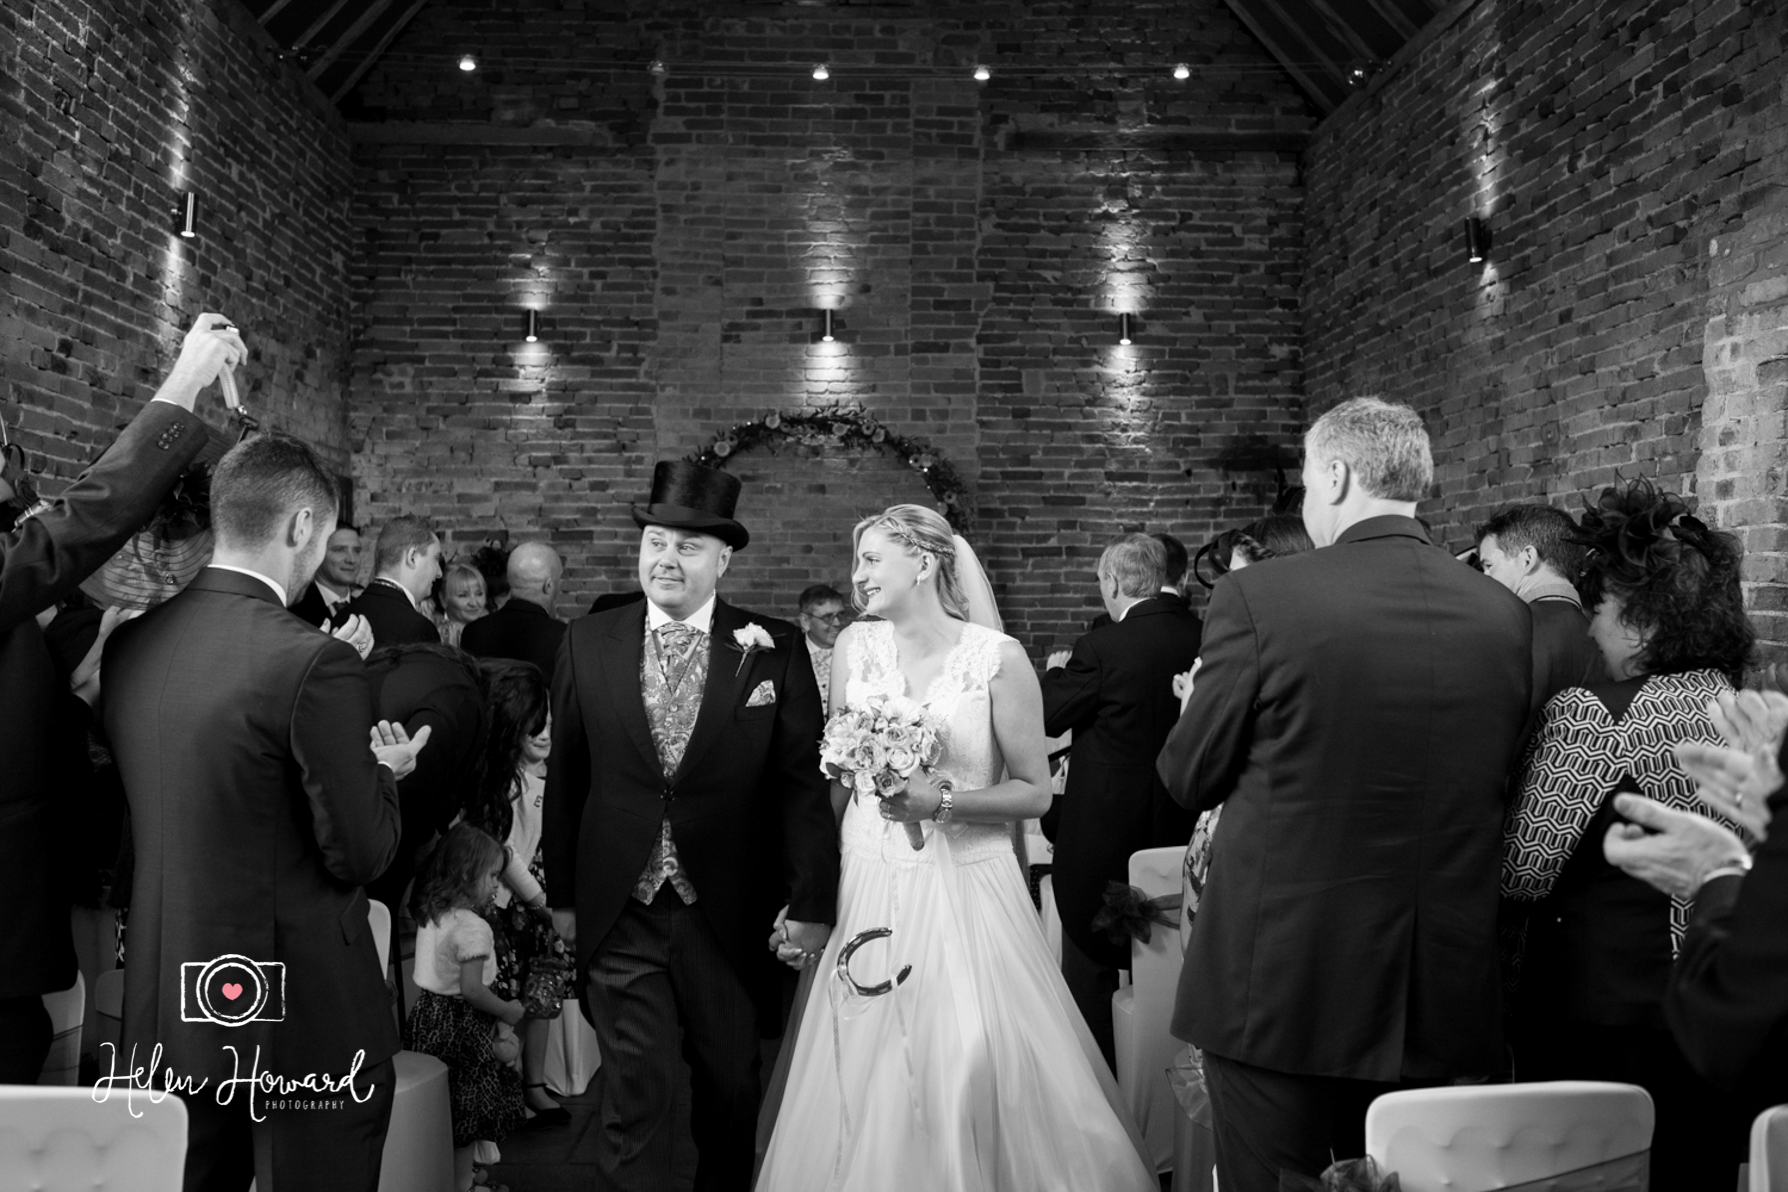 Black and White image of a bride and groom getting married at Packington Moor Near Lichfield